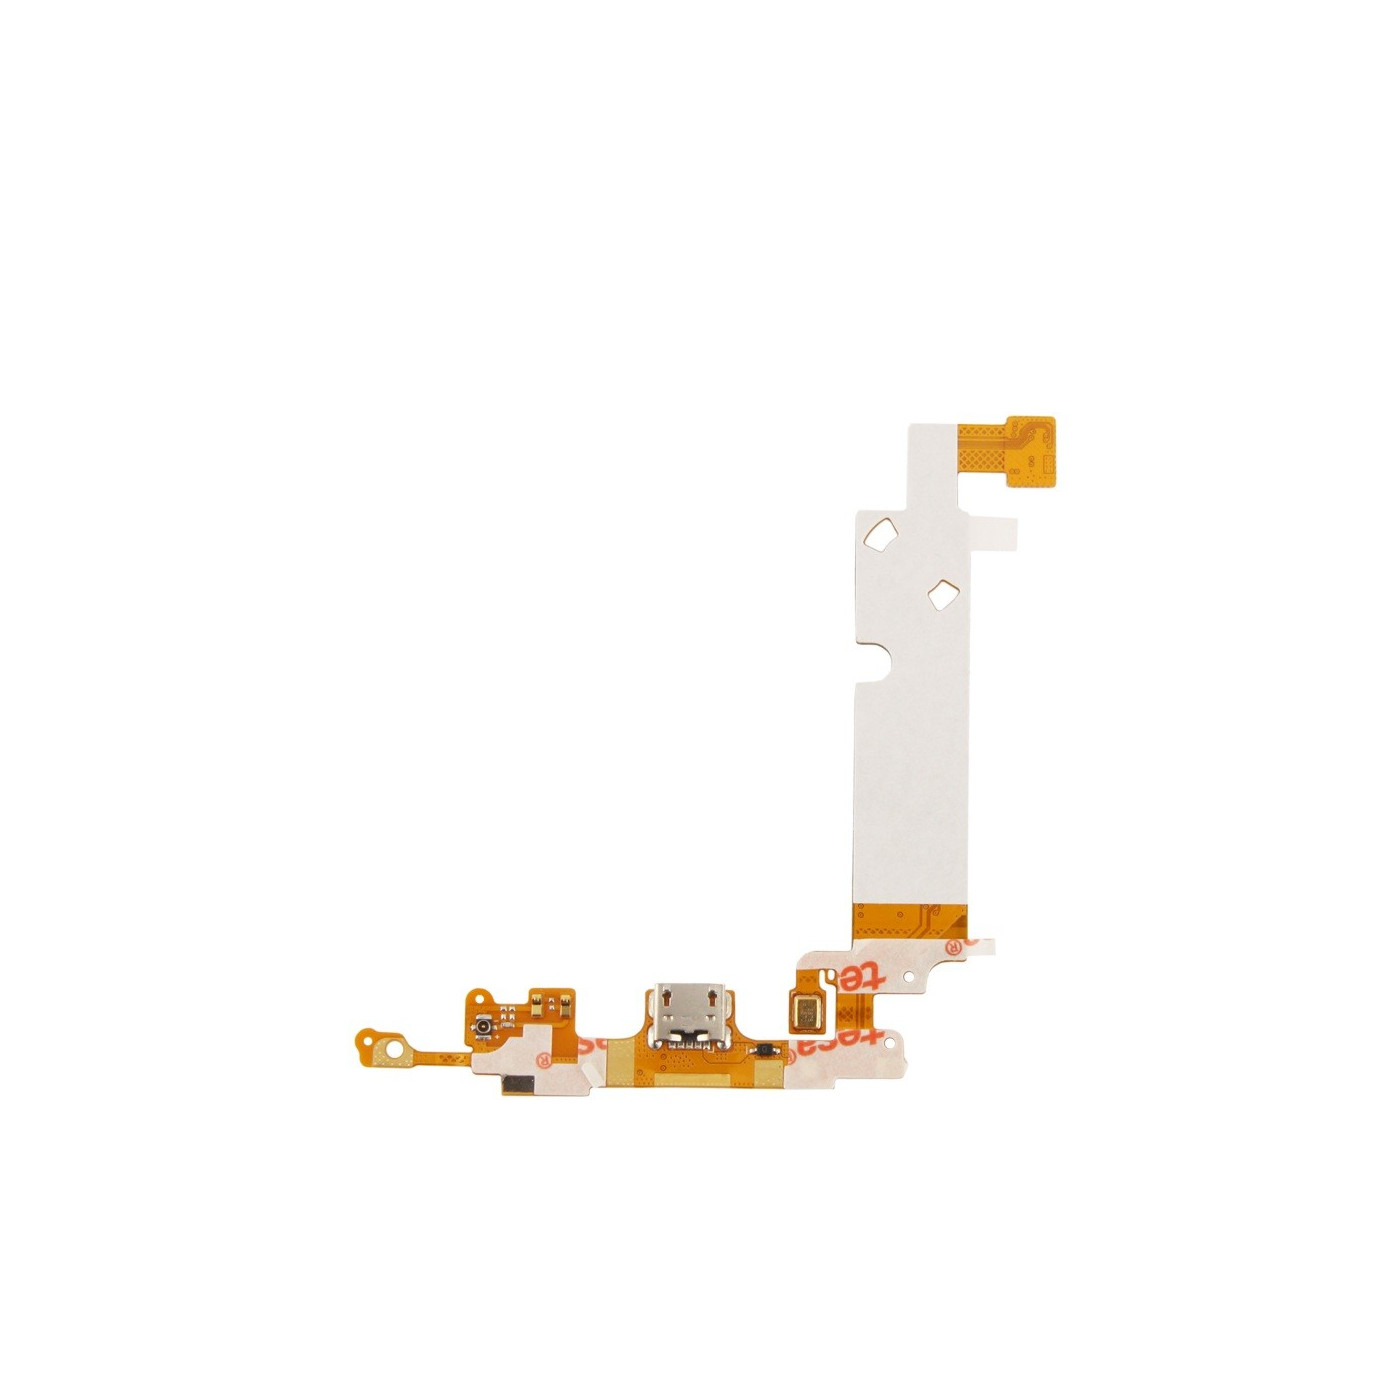 Flat Flex Ladestecker für LG Optimus L5 / E610 Ladestation